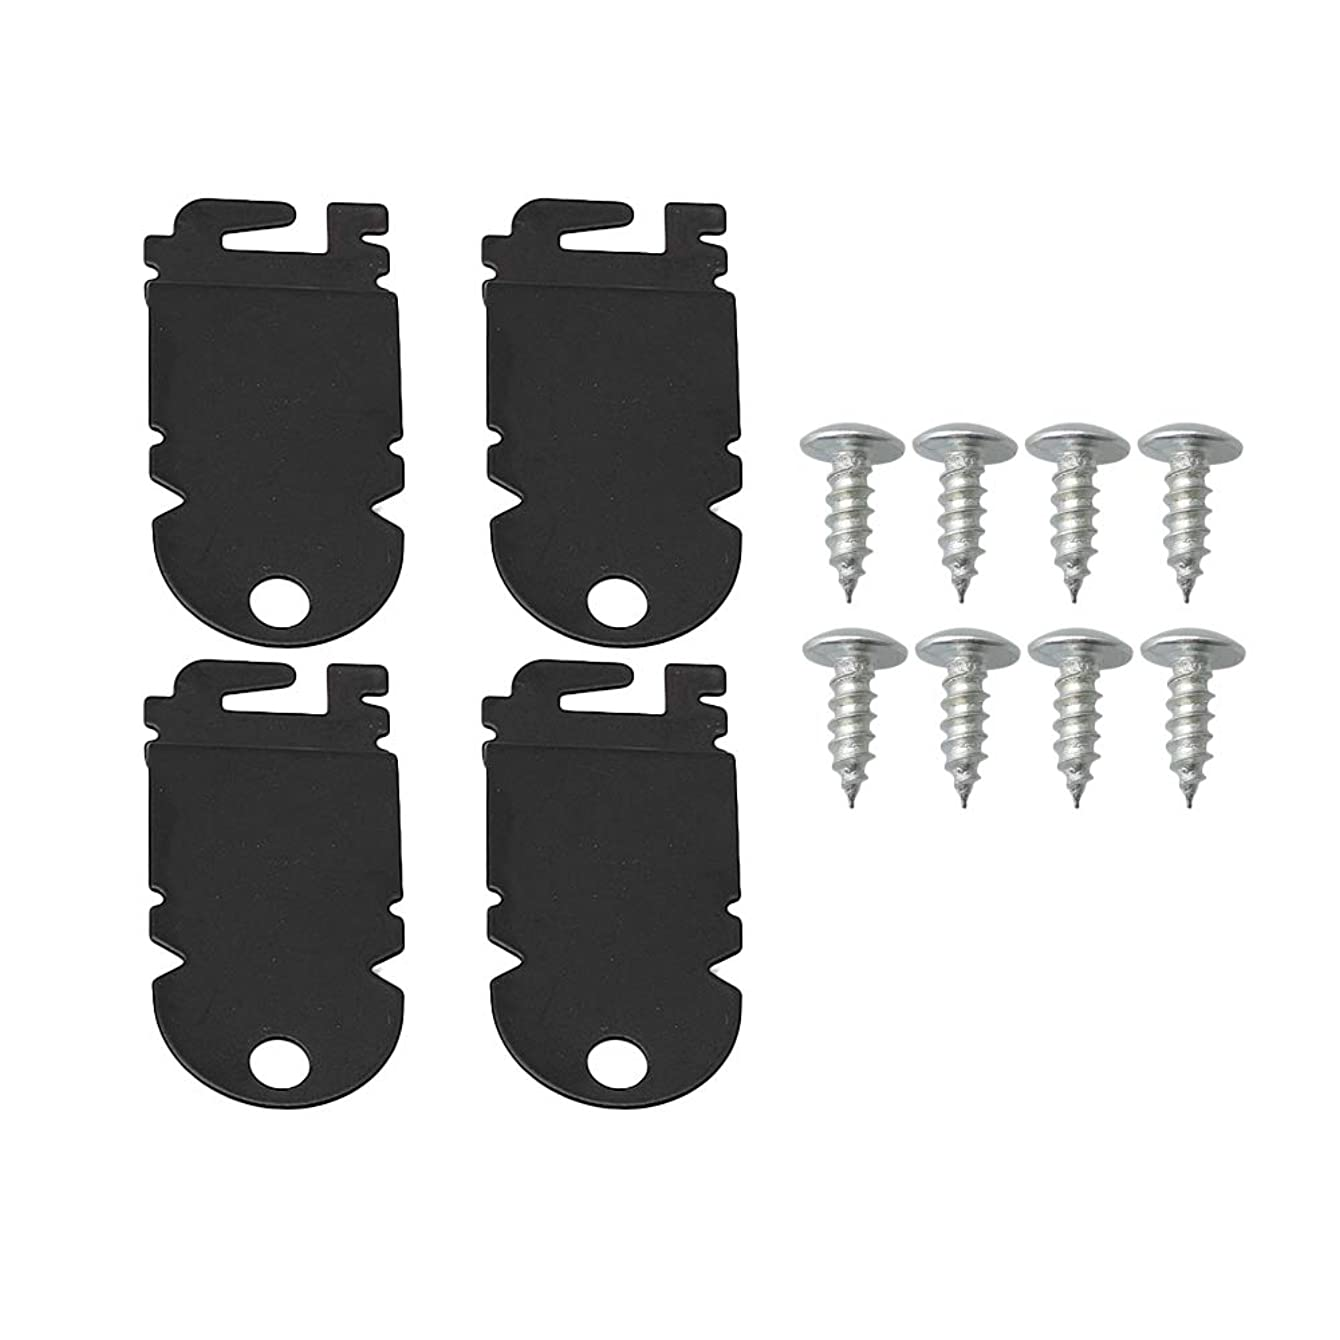 Mxfans 4 x PS1487167 8212560 Dishwasher Side Mounting Bracket Kit w/Screws